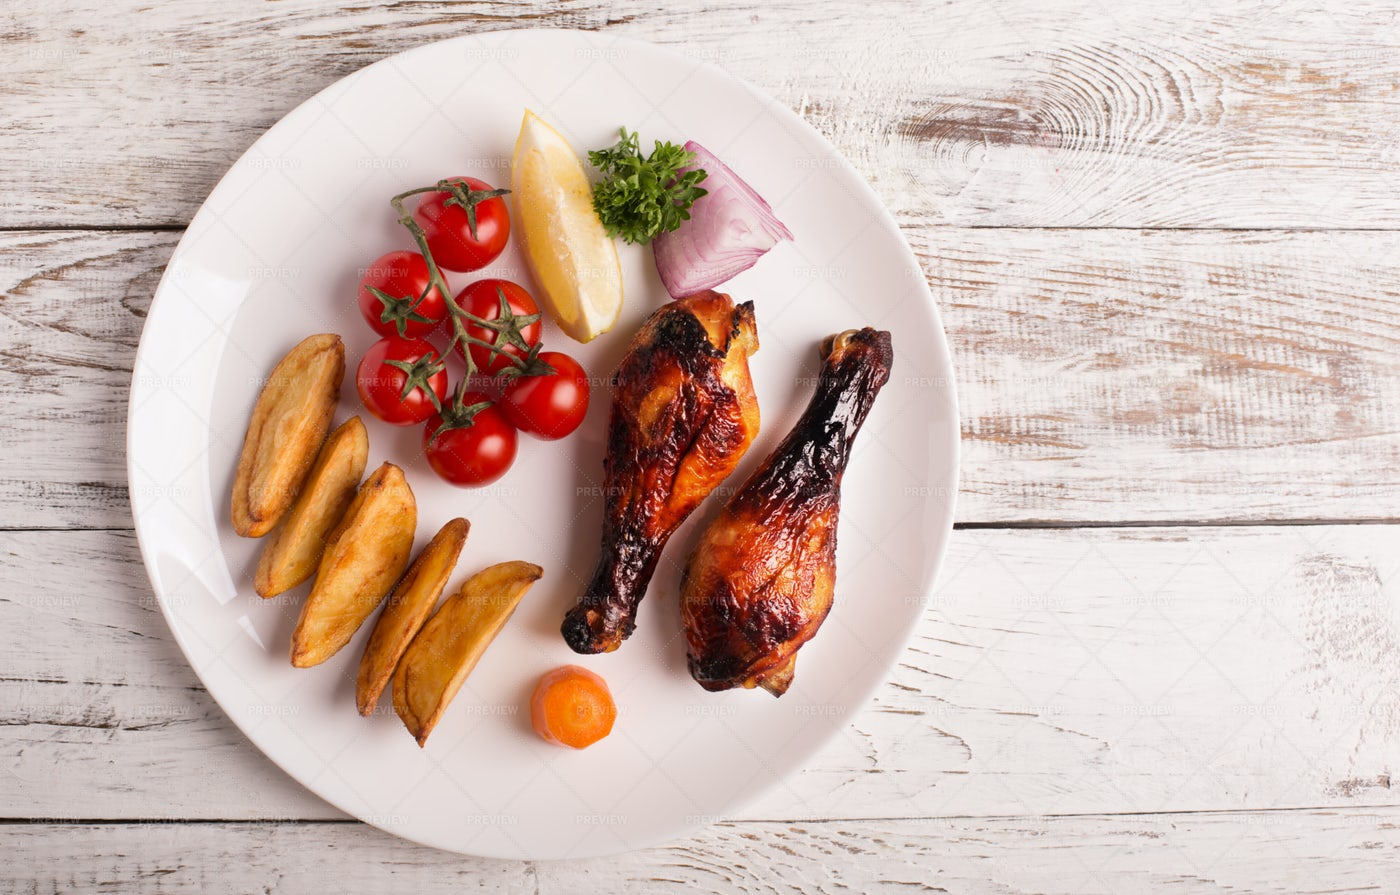 Grilled Chicken Meal: Stock Photos